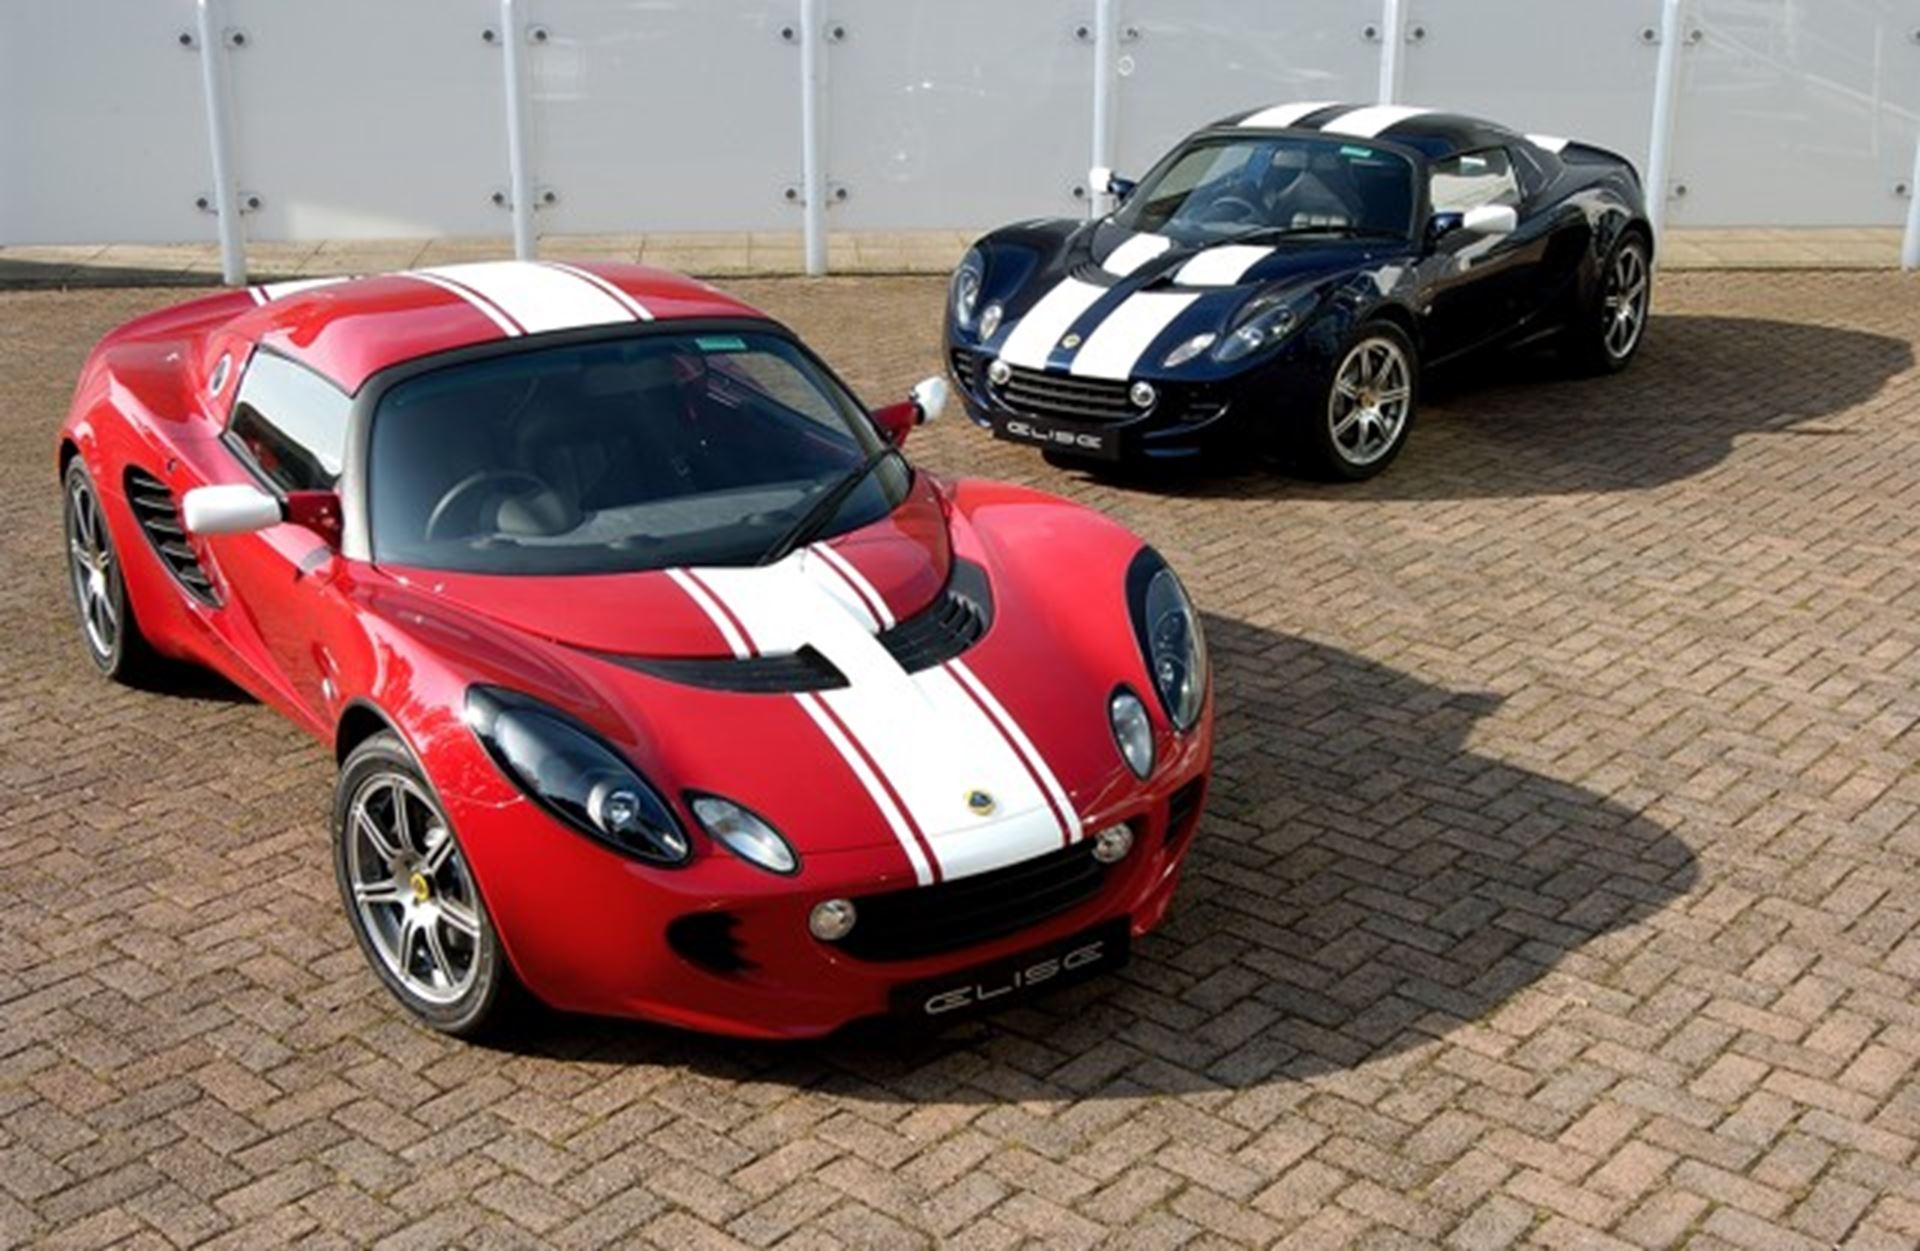 Lotus Elise South Africa Car Show